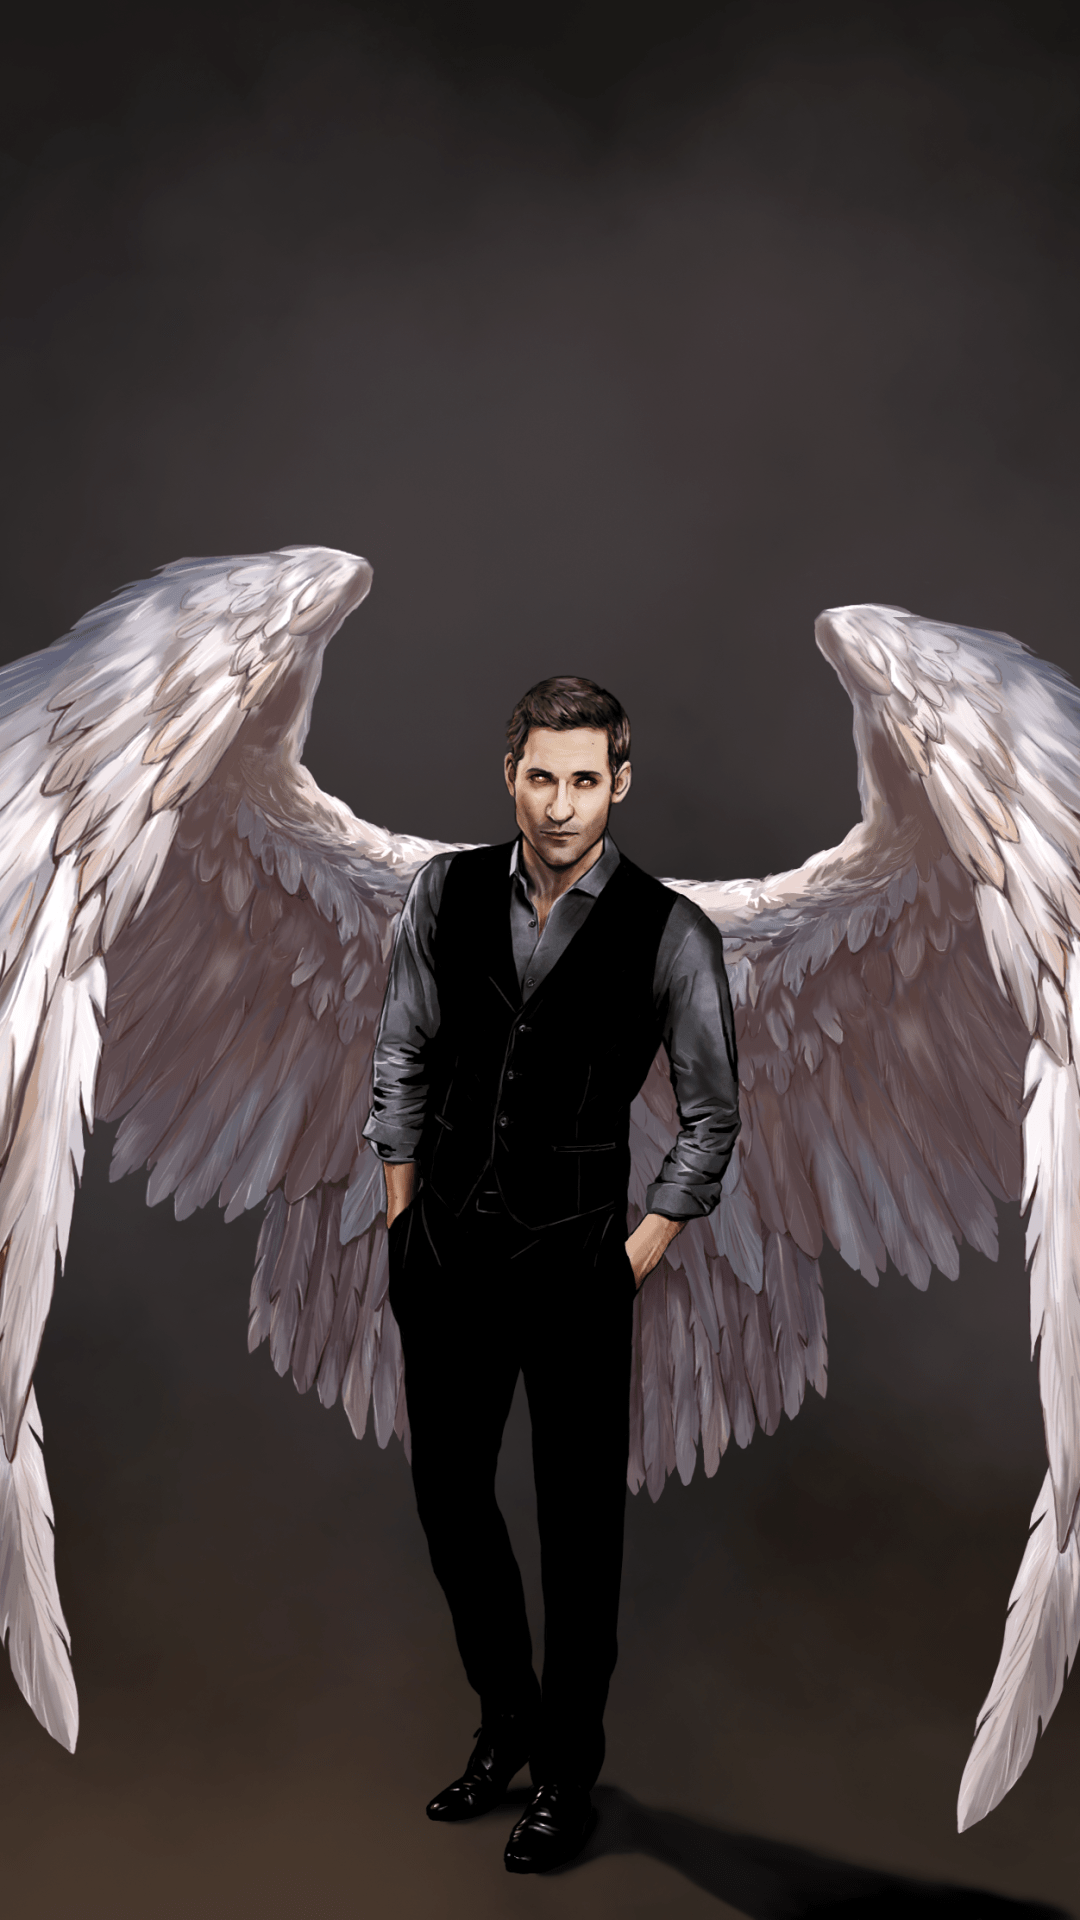 Lucifer Wings Morningstar